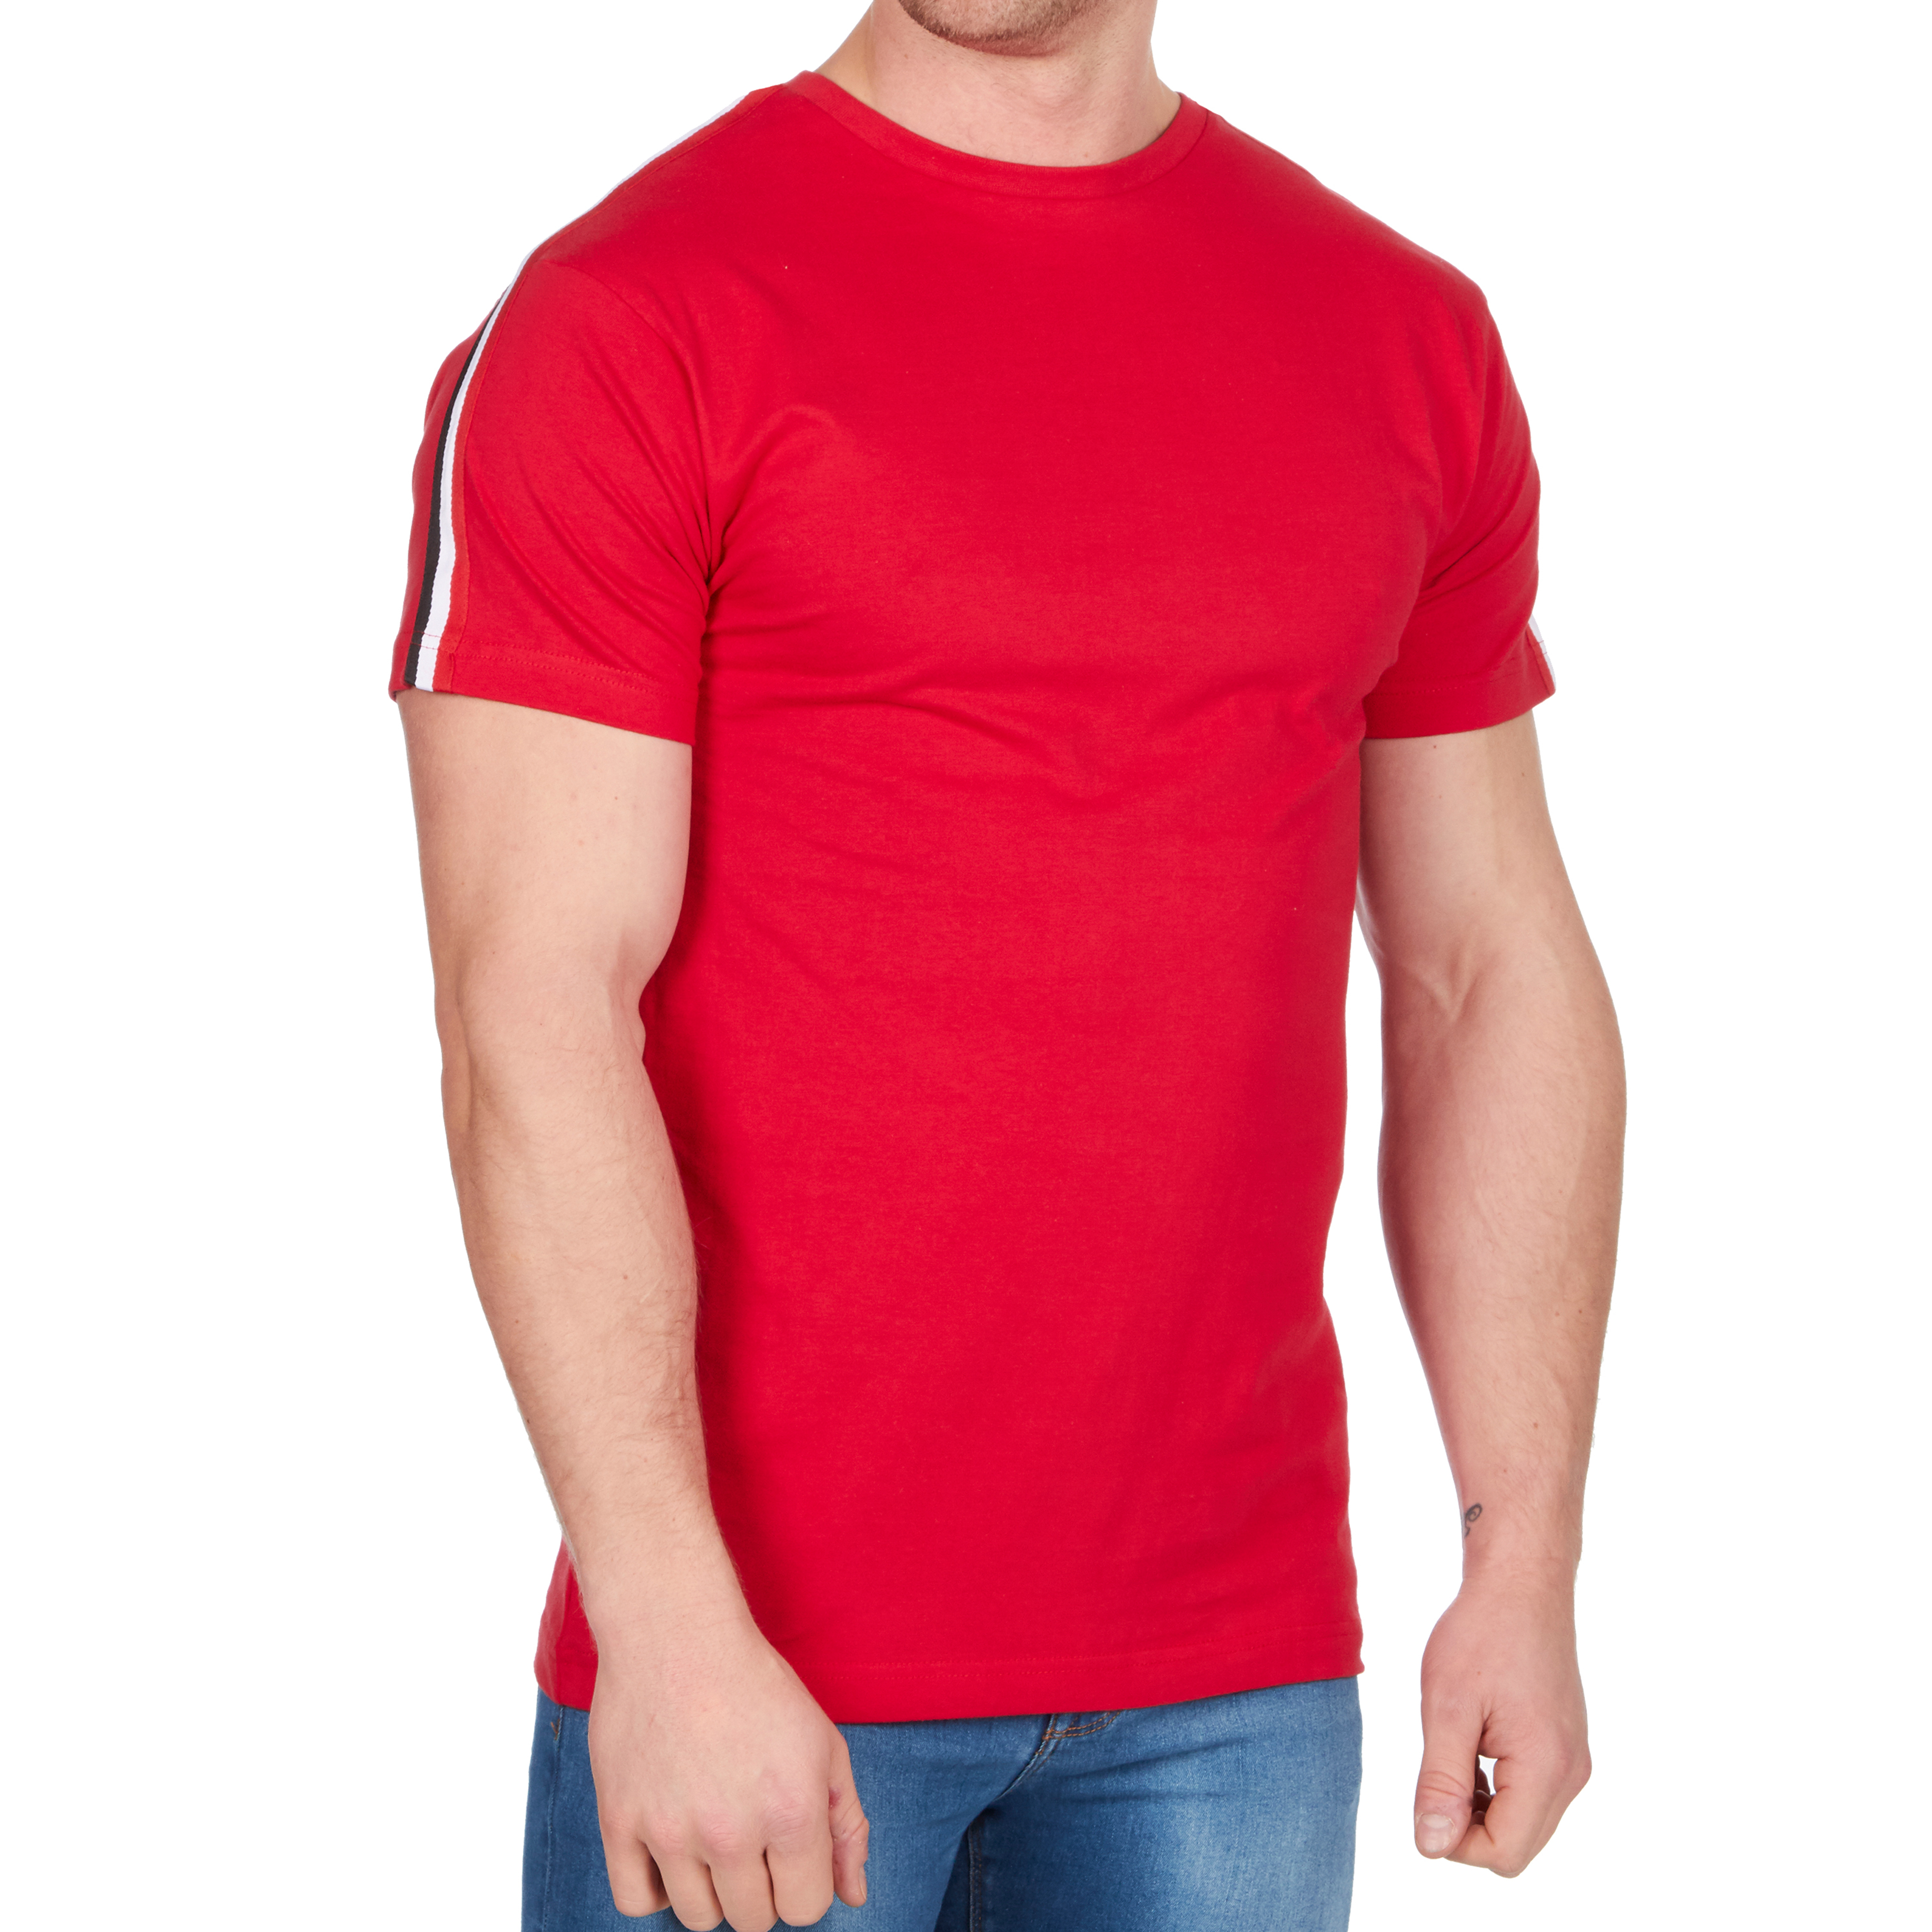 da030765 Mens Crew Neck Plain Cotton T-shirt Tee Top Fitted Casual Contrast Stripe  Blank